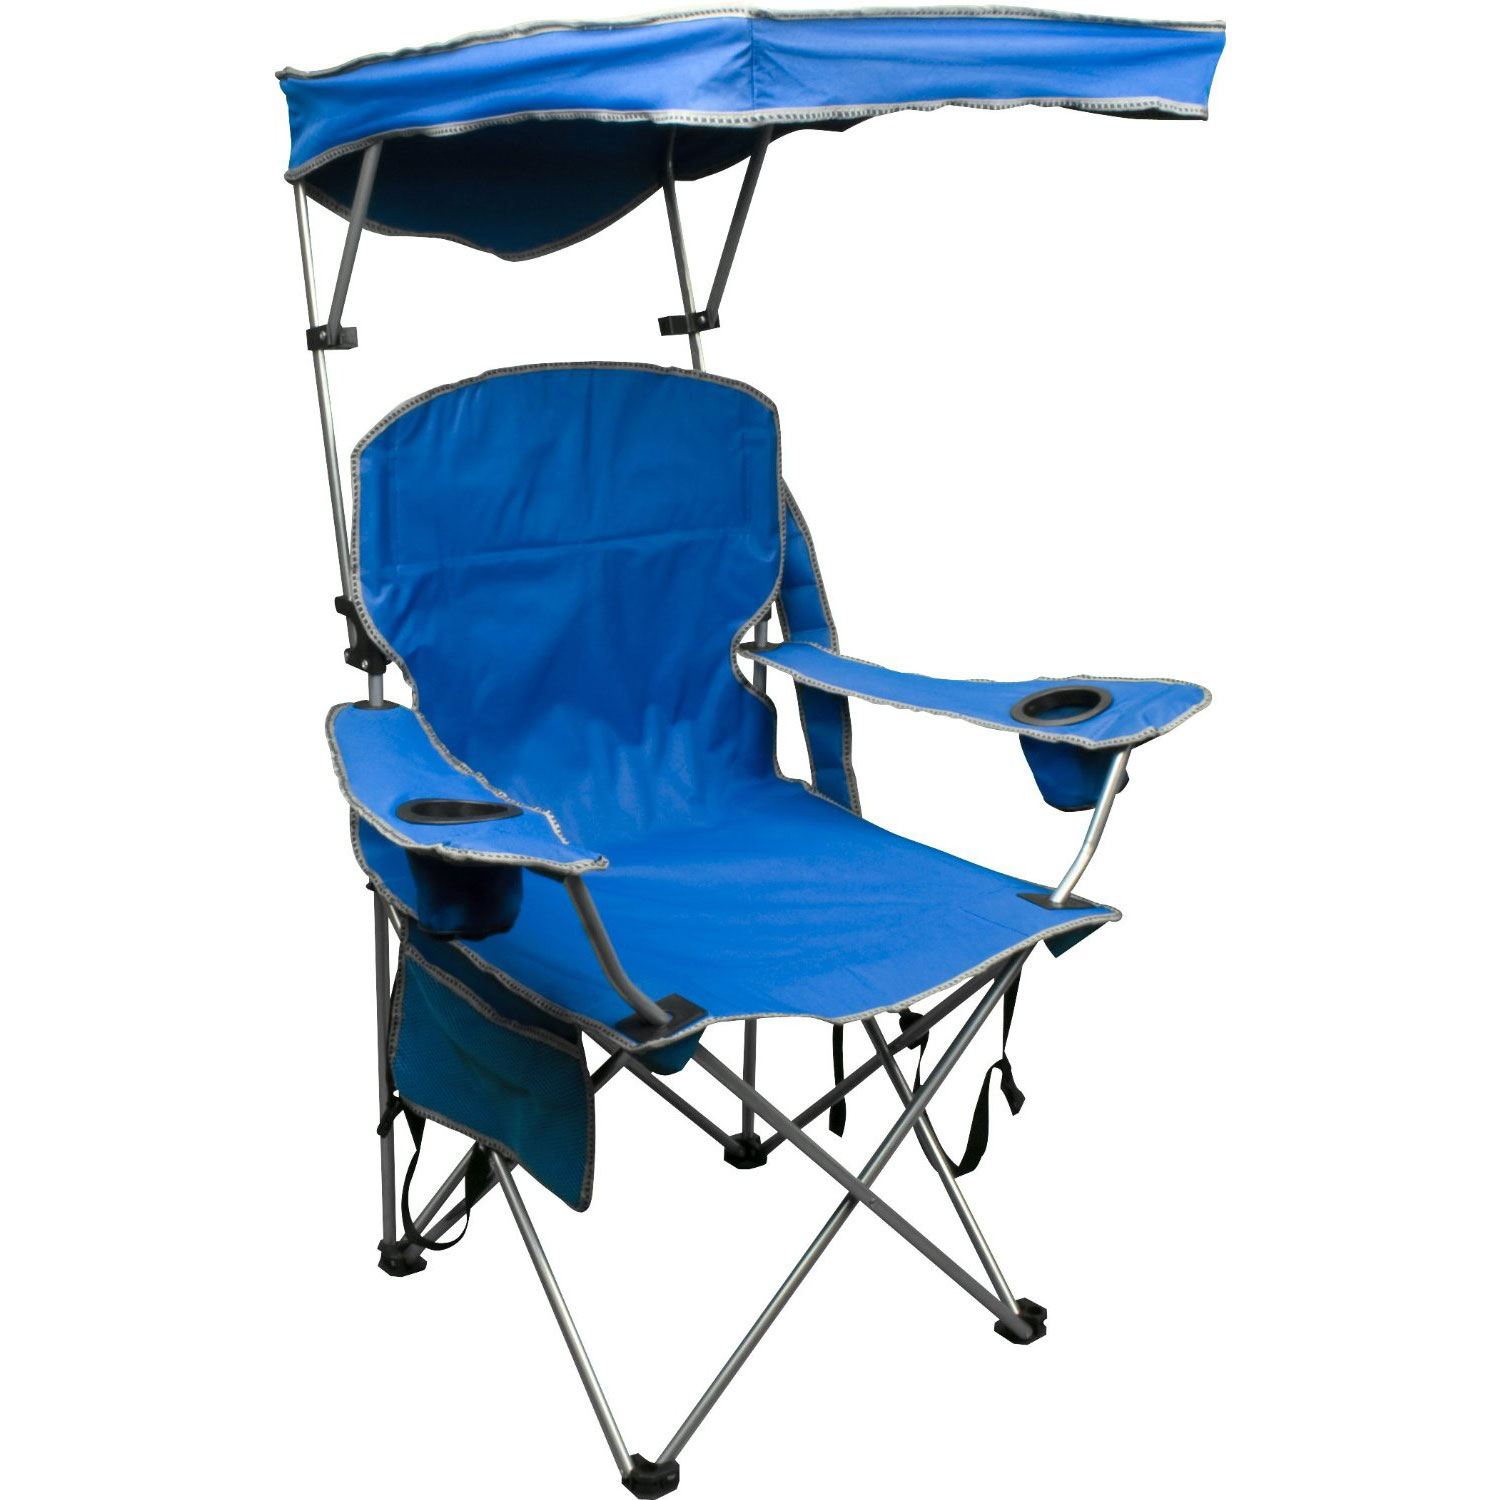 Quik Chair Fully Adjustable Folding Camping Chair